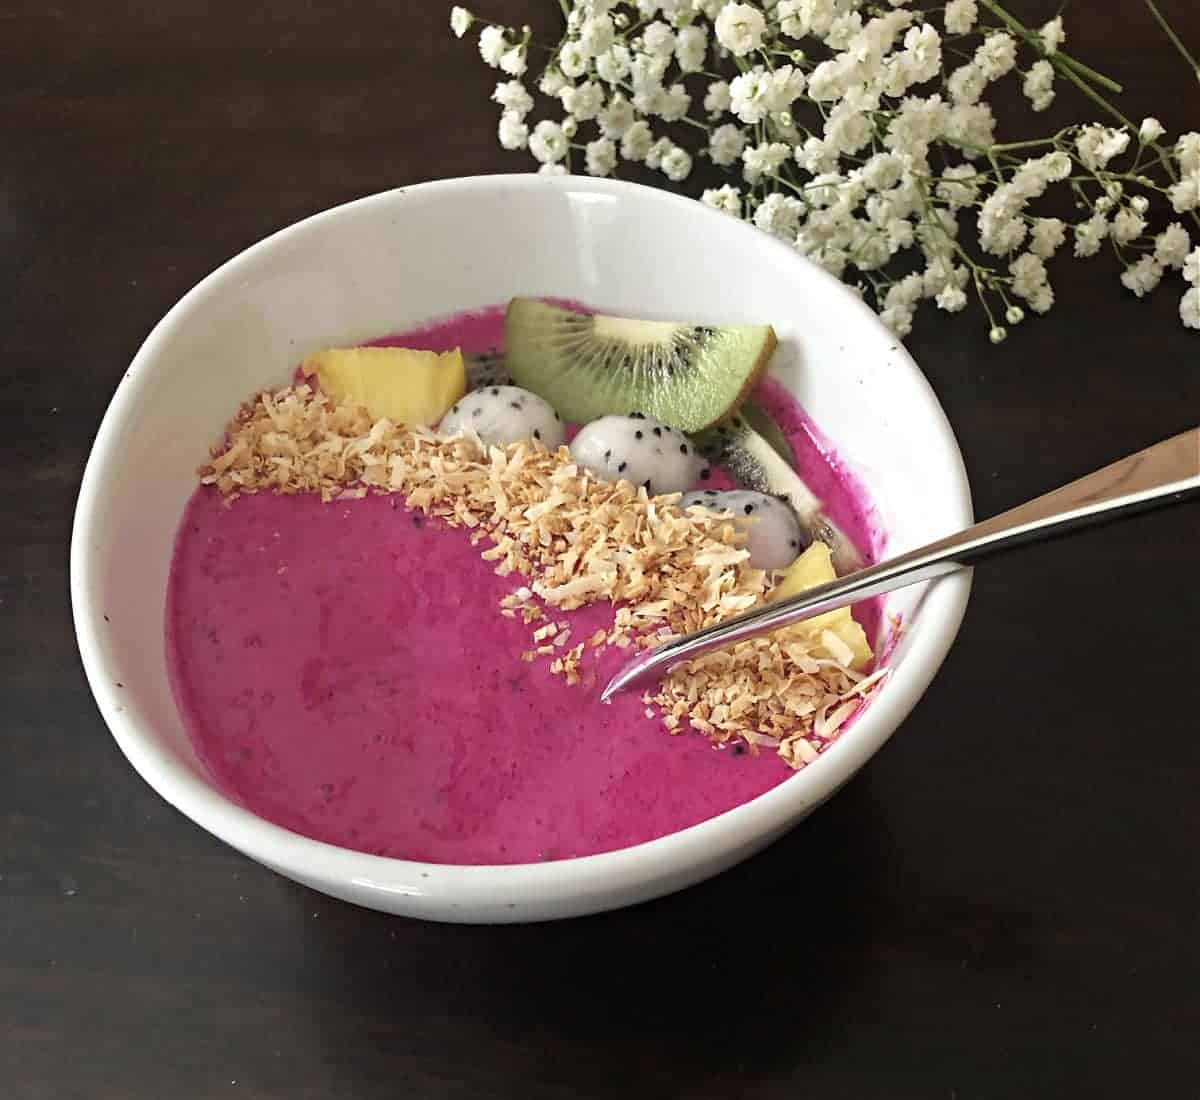 dragon fruit smoothie bowl garnished with toasted coconut and kiwi